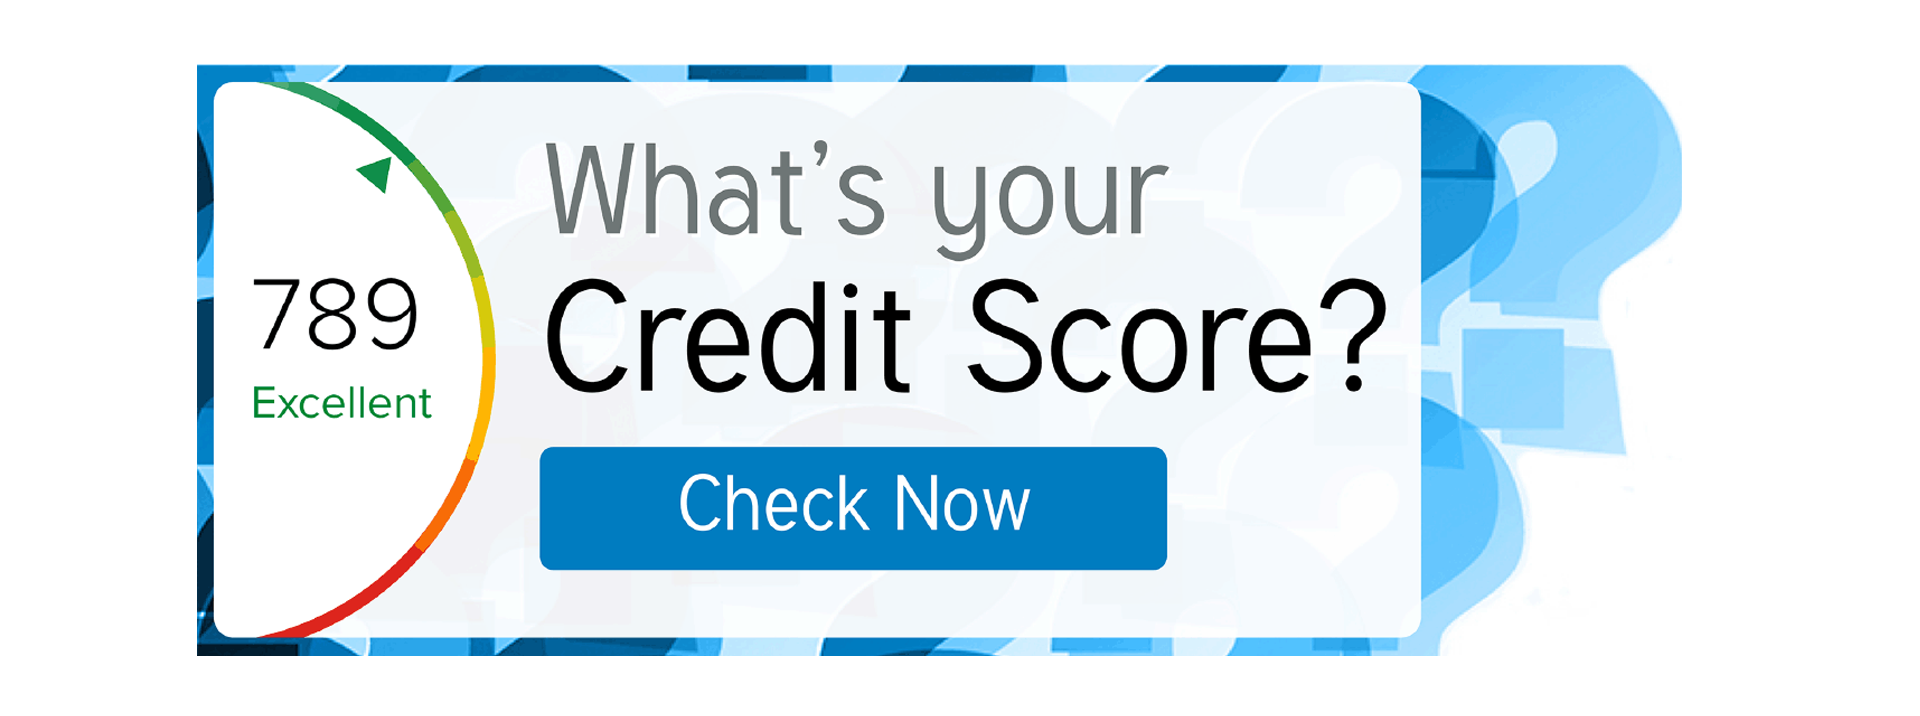 Check your credit score now